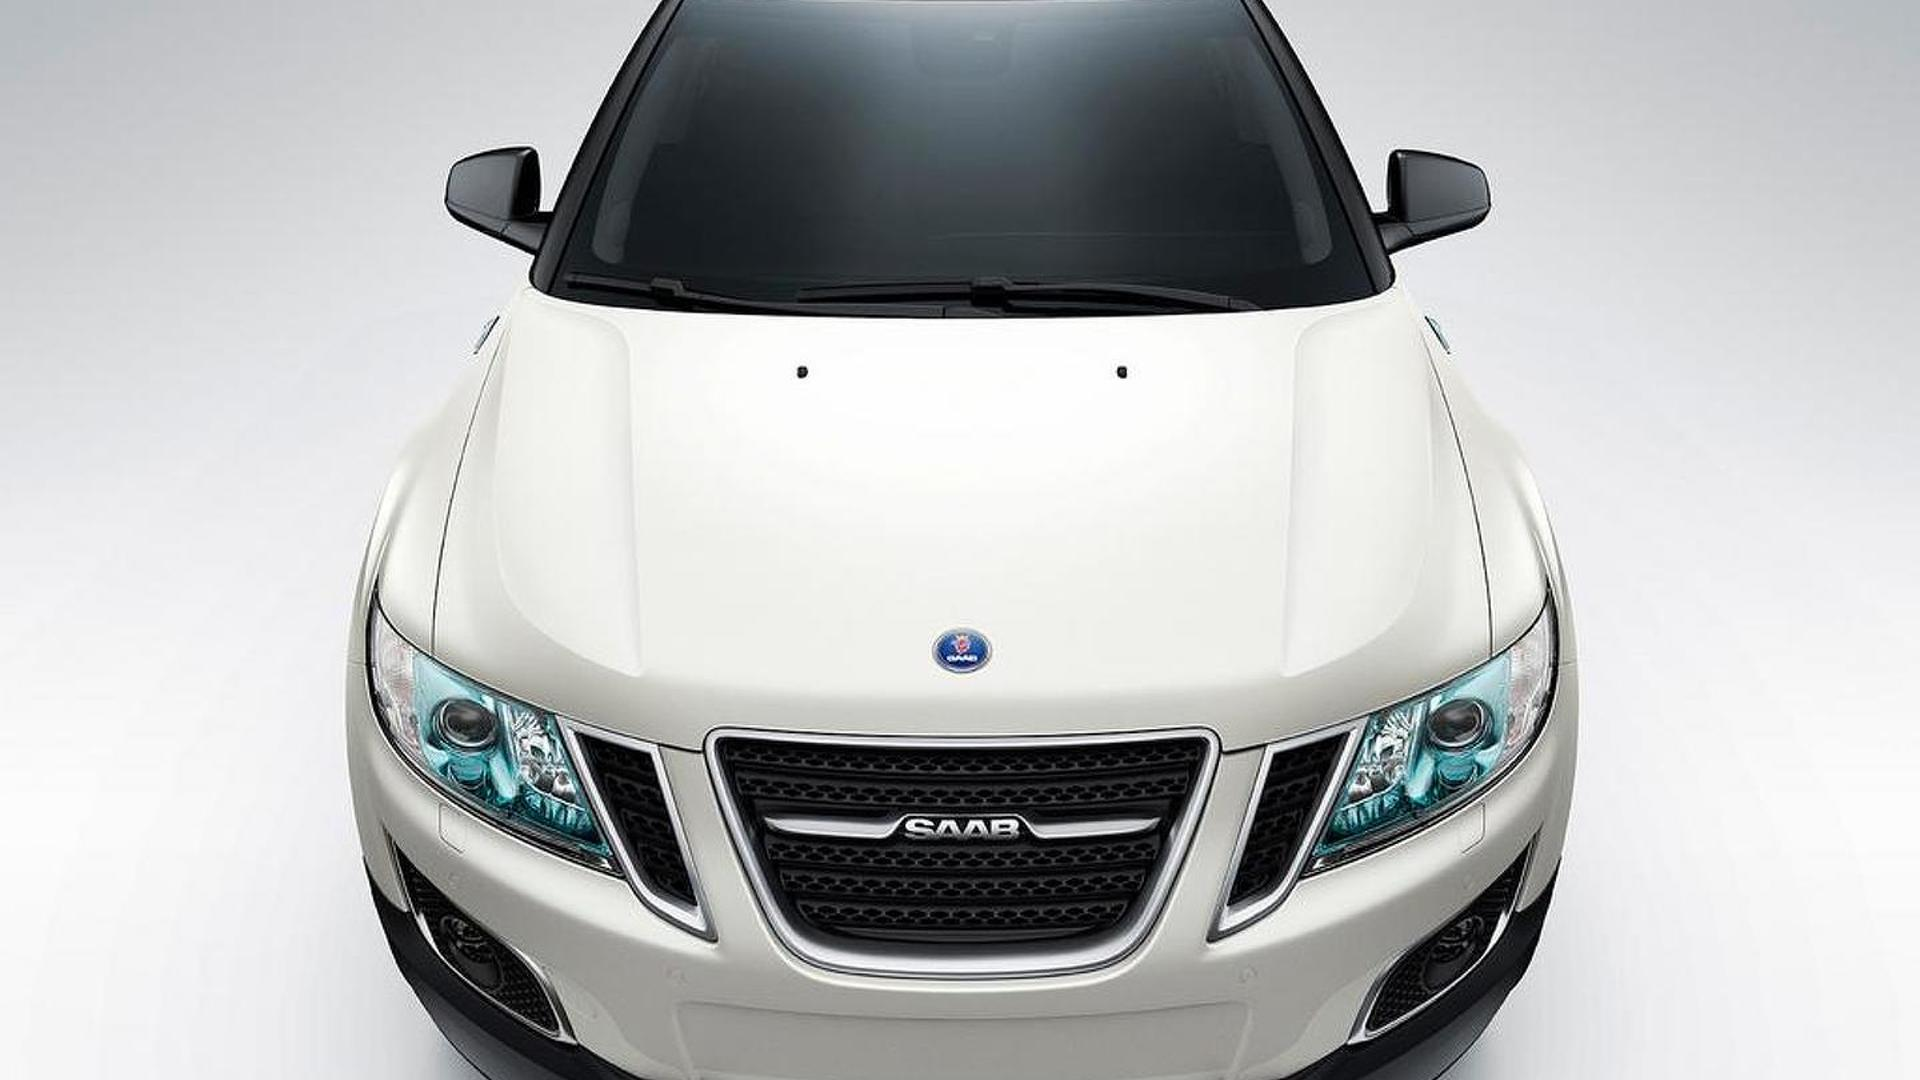 Saab to resume production on Friday - report